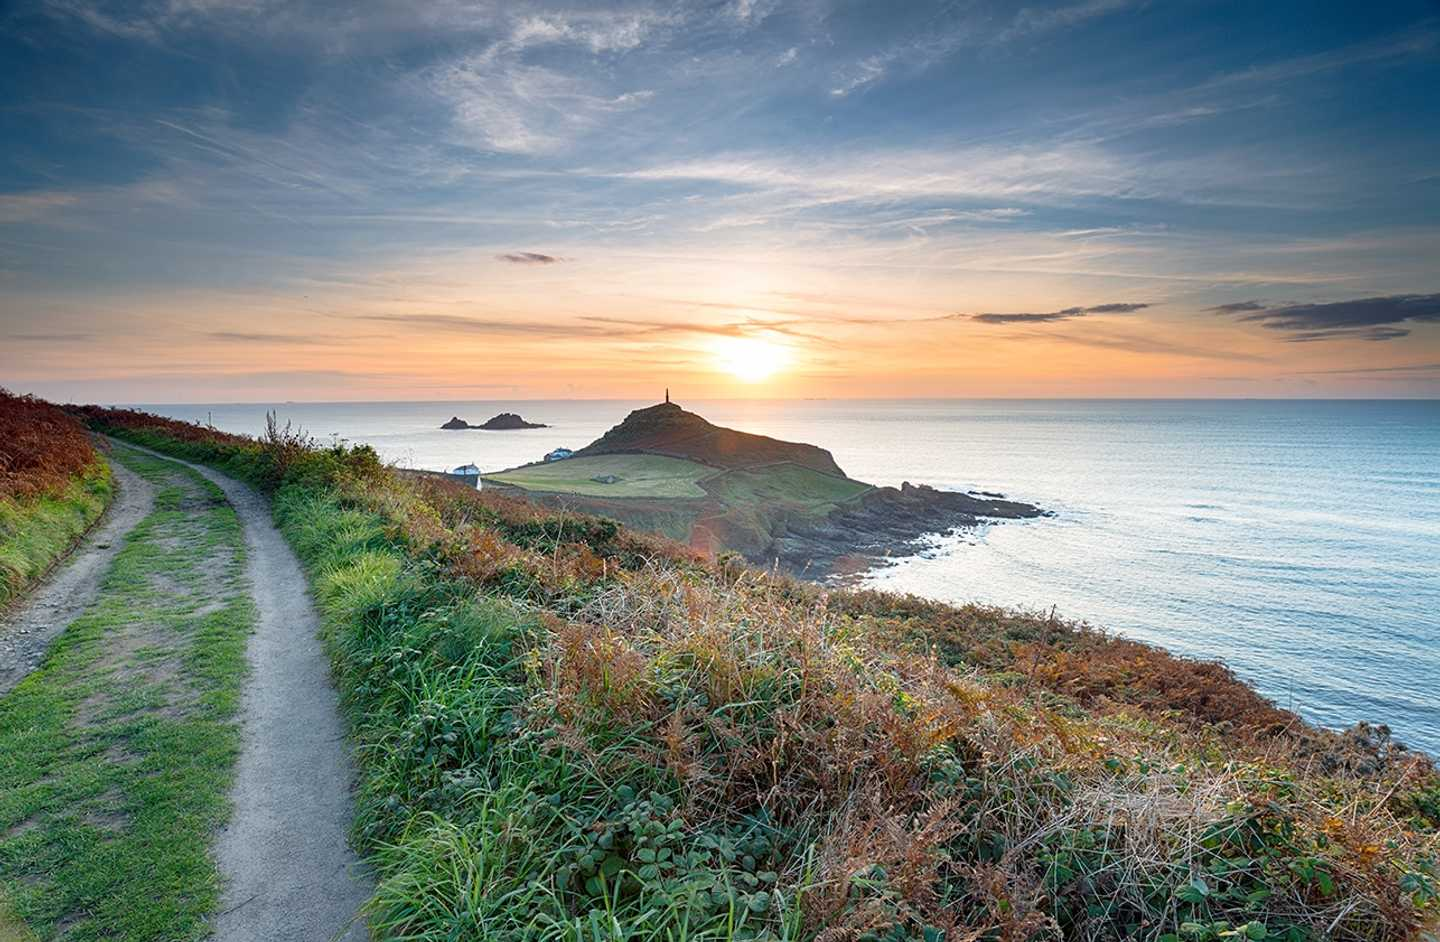 A beautiful sunset at Land's End